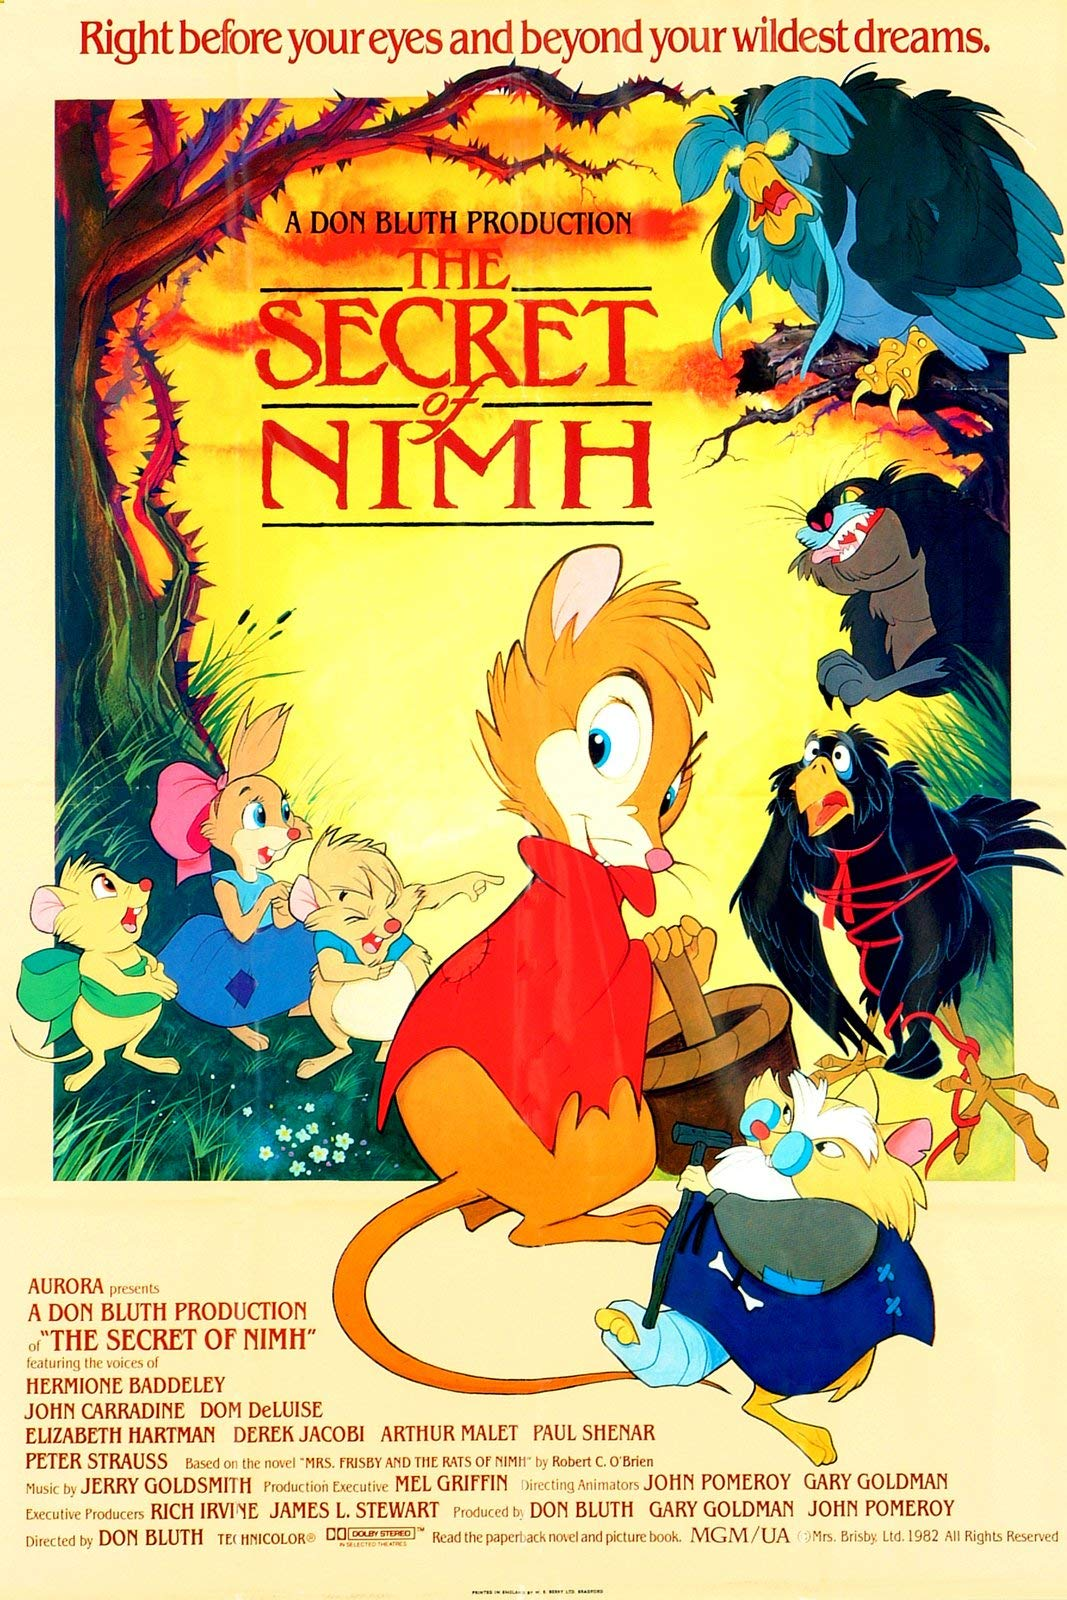 The Secret of NIMH (1982) starring Elizabeth Hartman, Peter Strauss